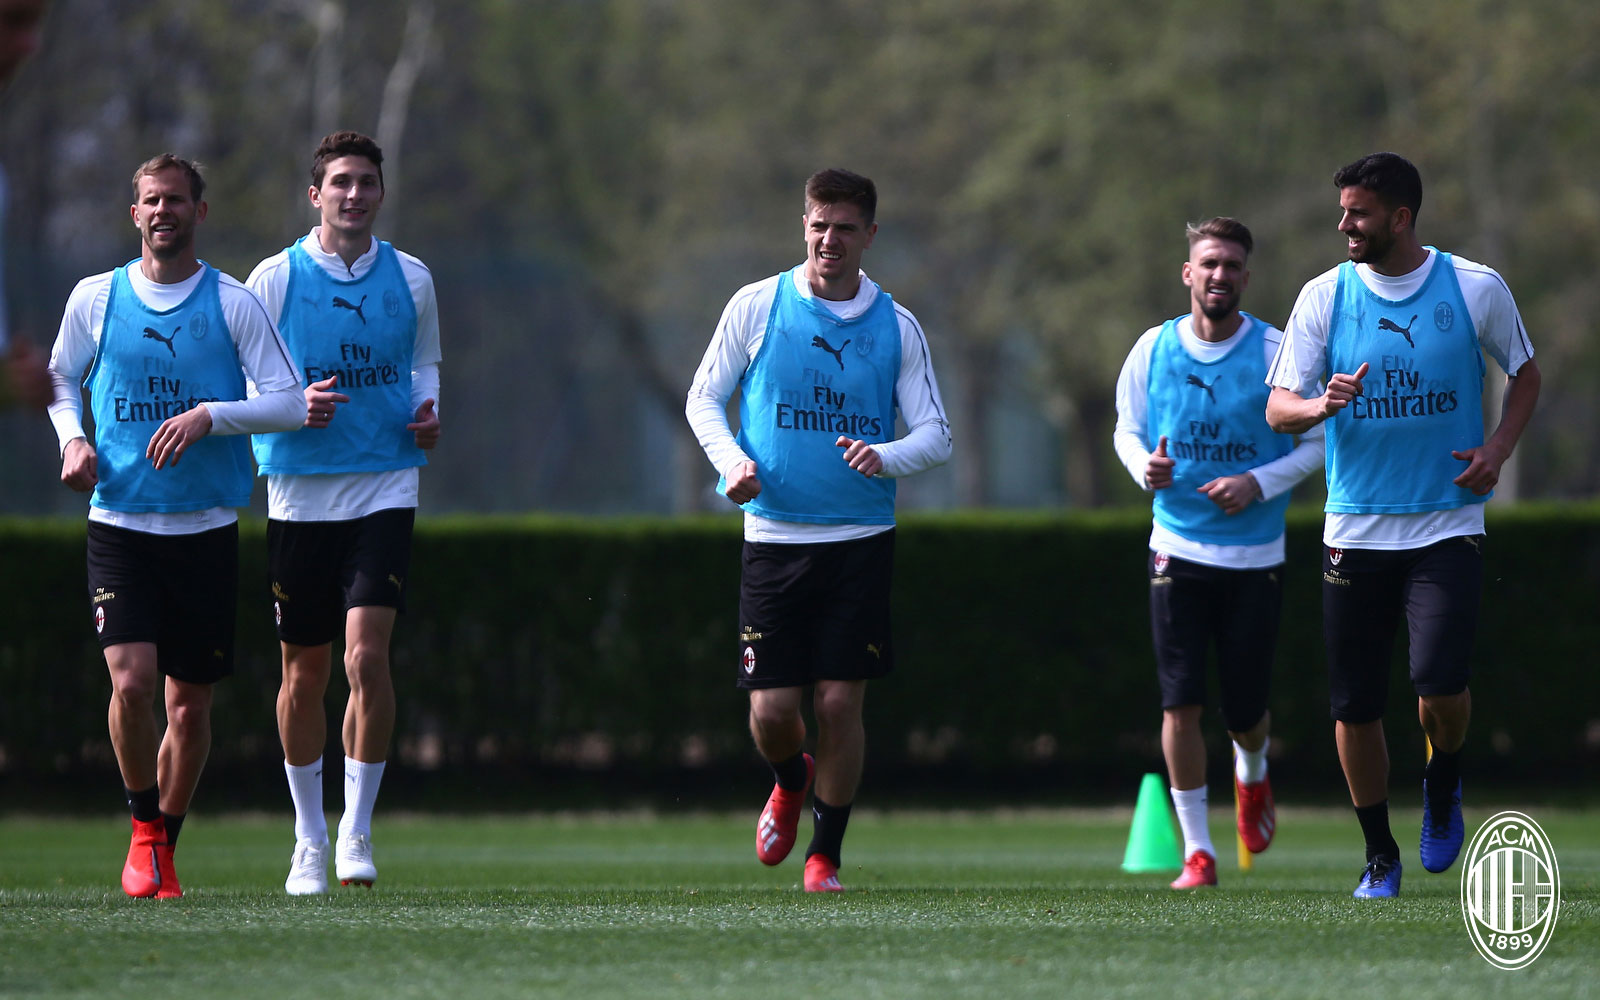 Ivan Strinić, Mattia Caldara, Krzysztof Piątek, Samu Castillejo and Mateo Musacchio during training at Milanello. (@acmilan.com)